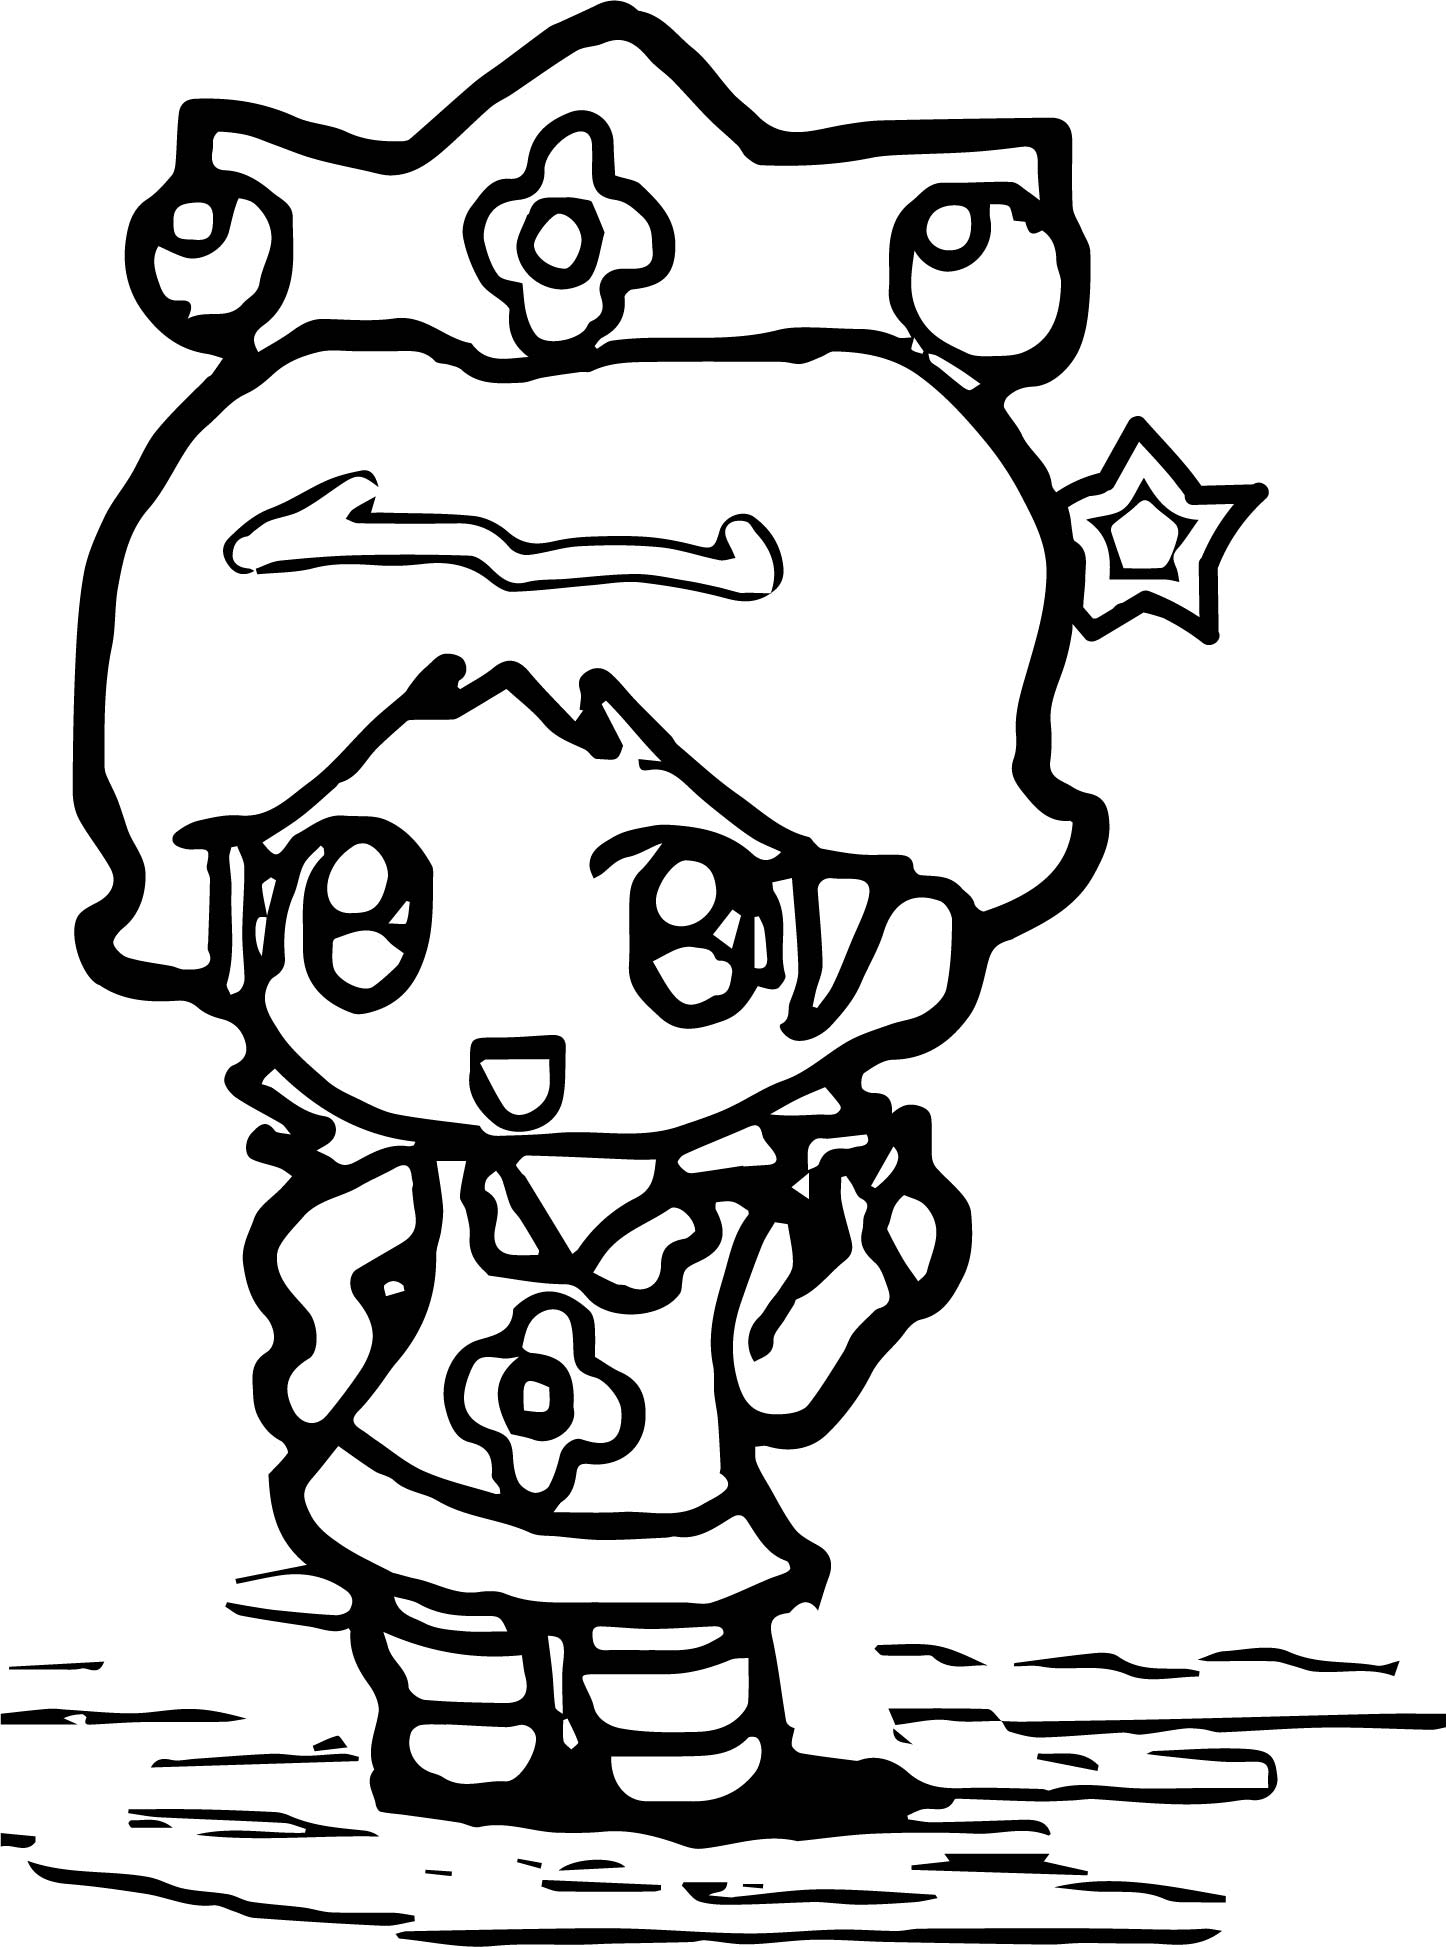 Star Baby Daisy Coloring Page | Wecoloringpage.com